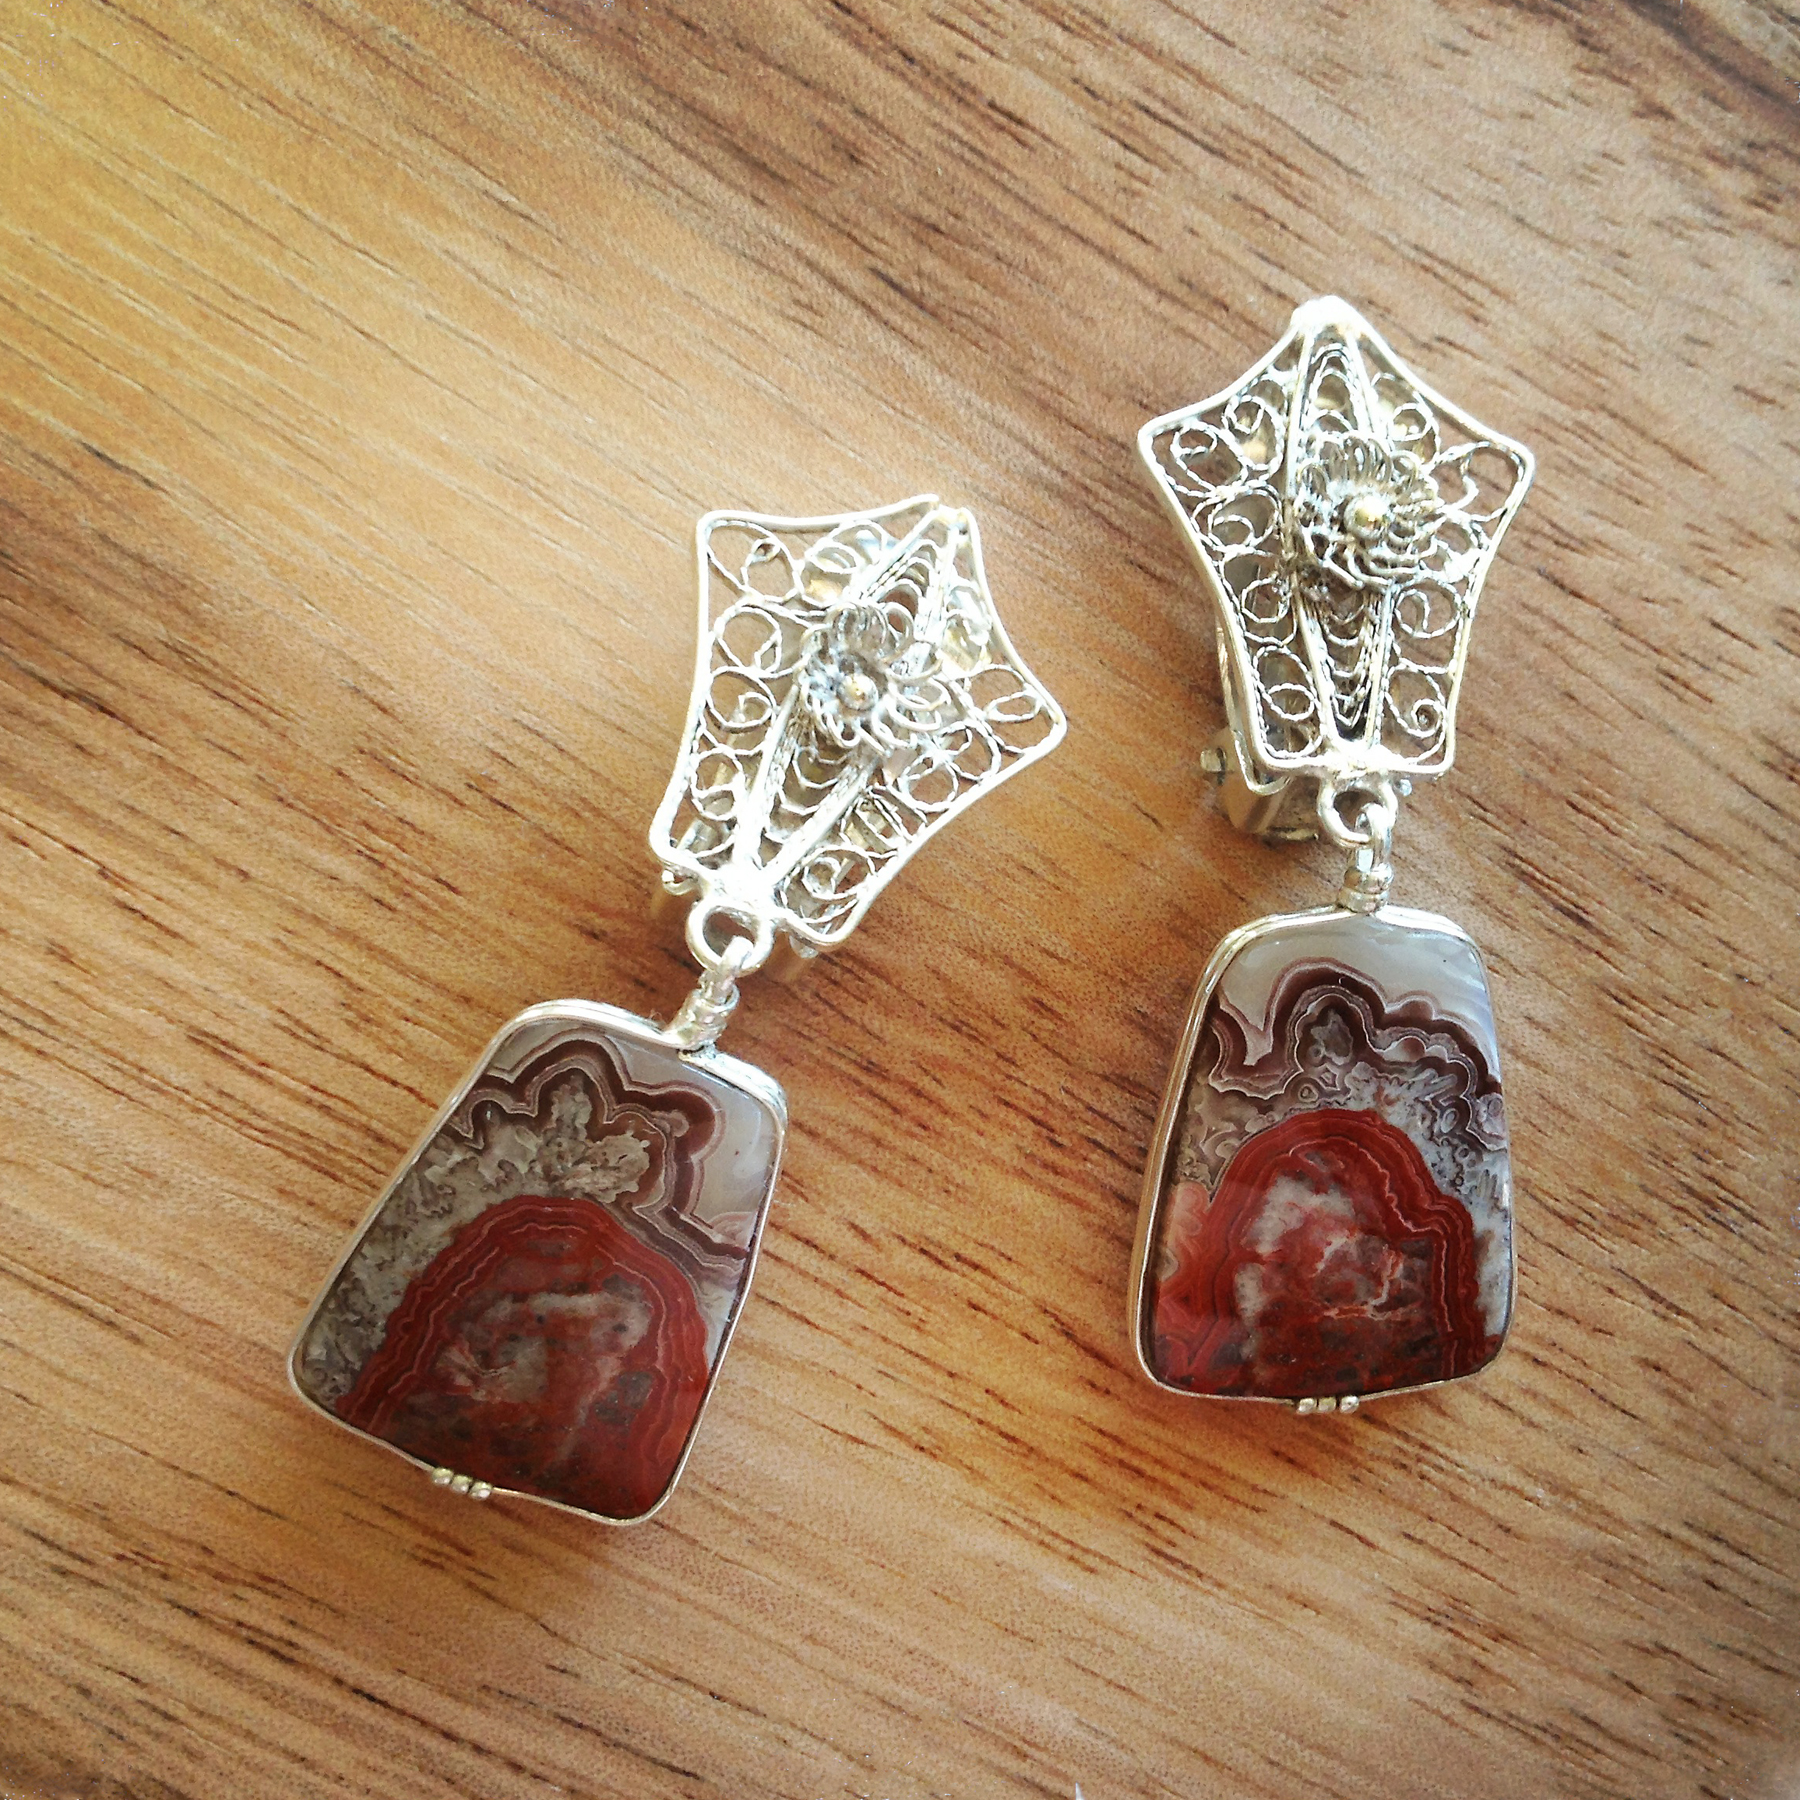 Lace Agate and Antique Filigree Earrings  Private Collection